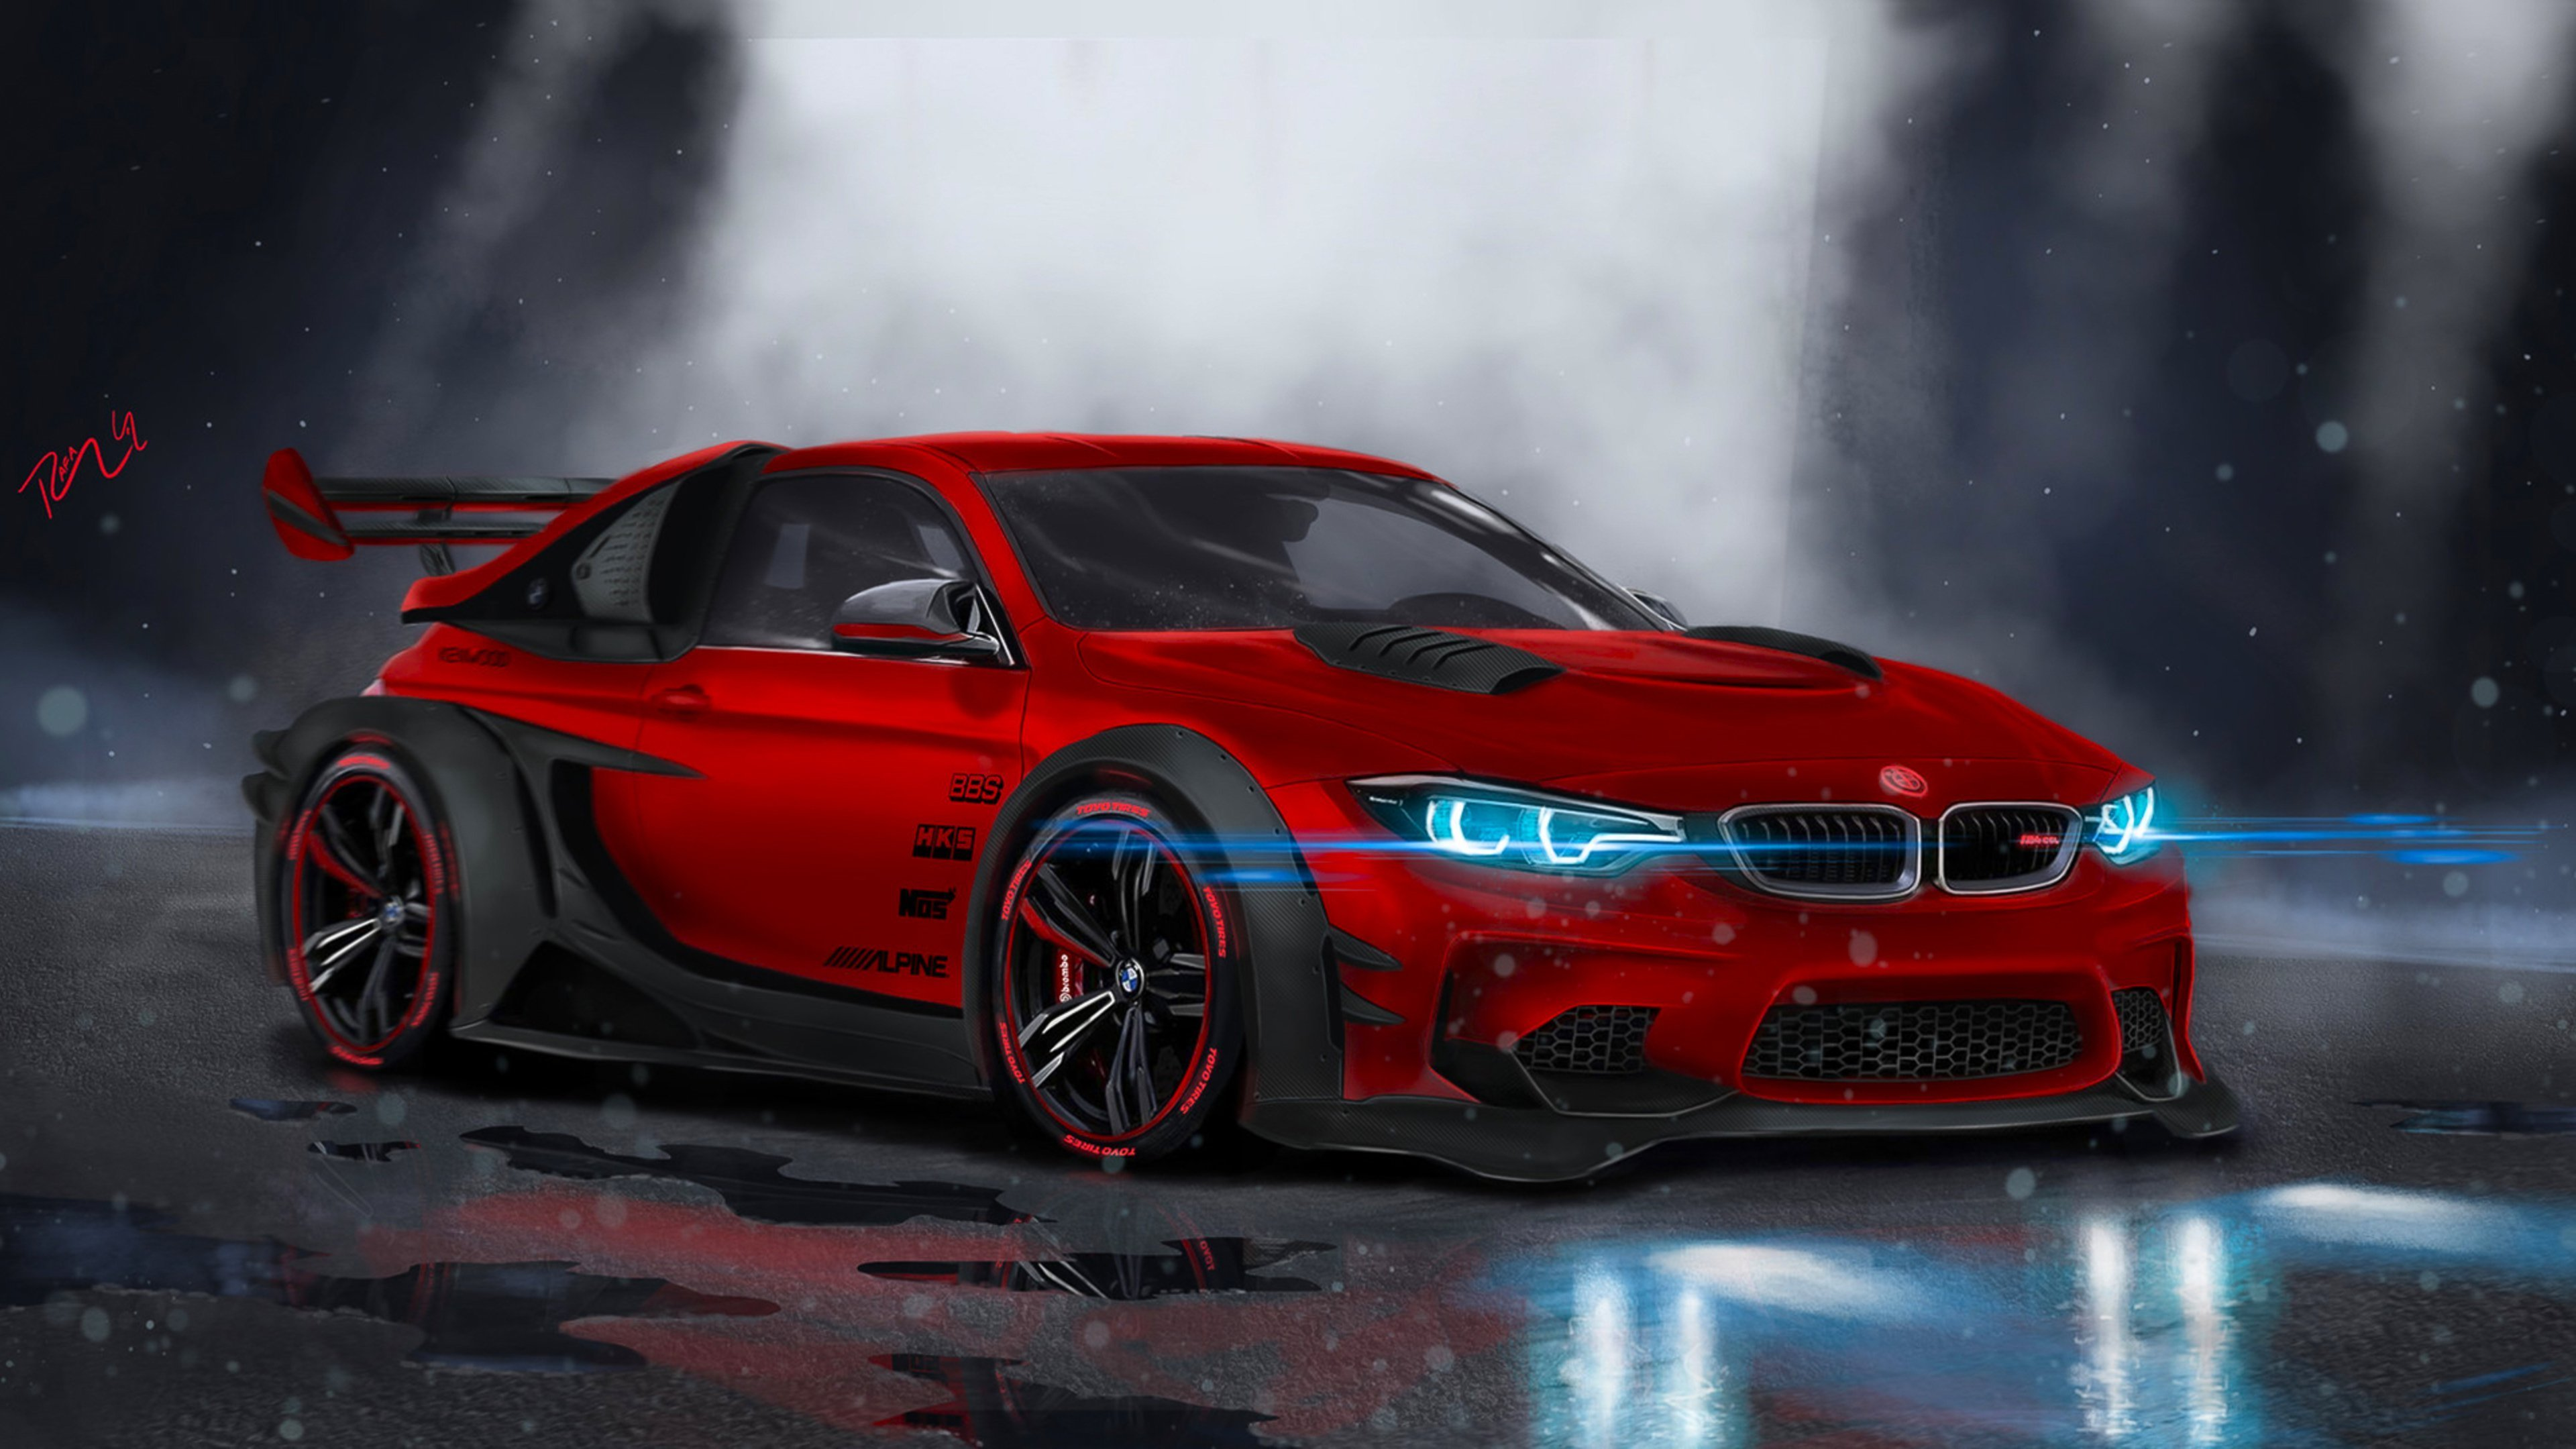 New Bmw M4 Highly Modified Hd Cars 4K Wallpapers Images On This Month